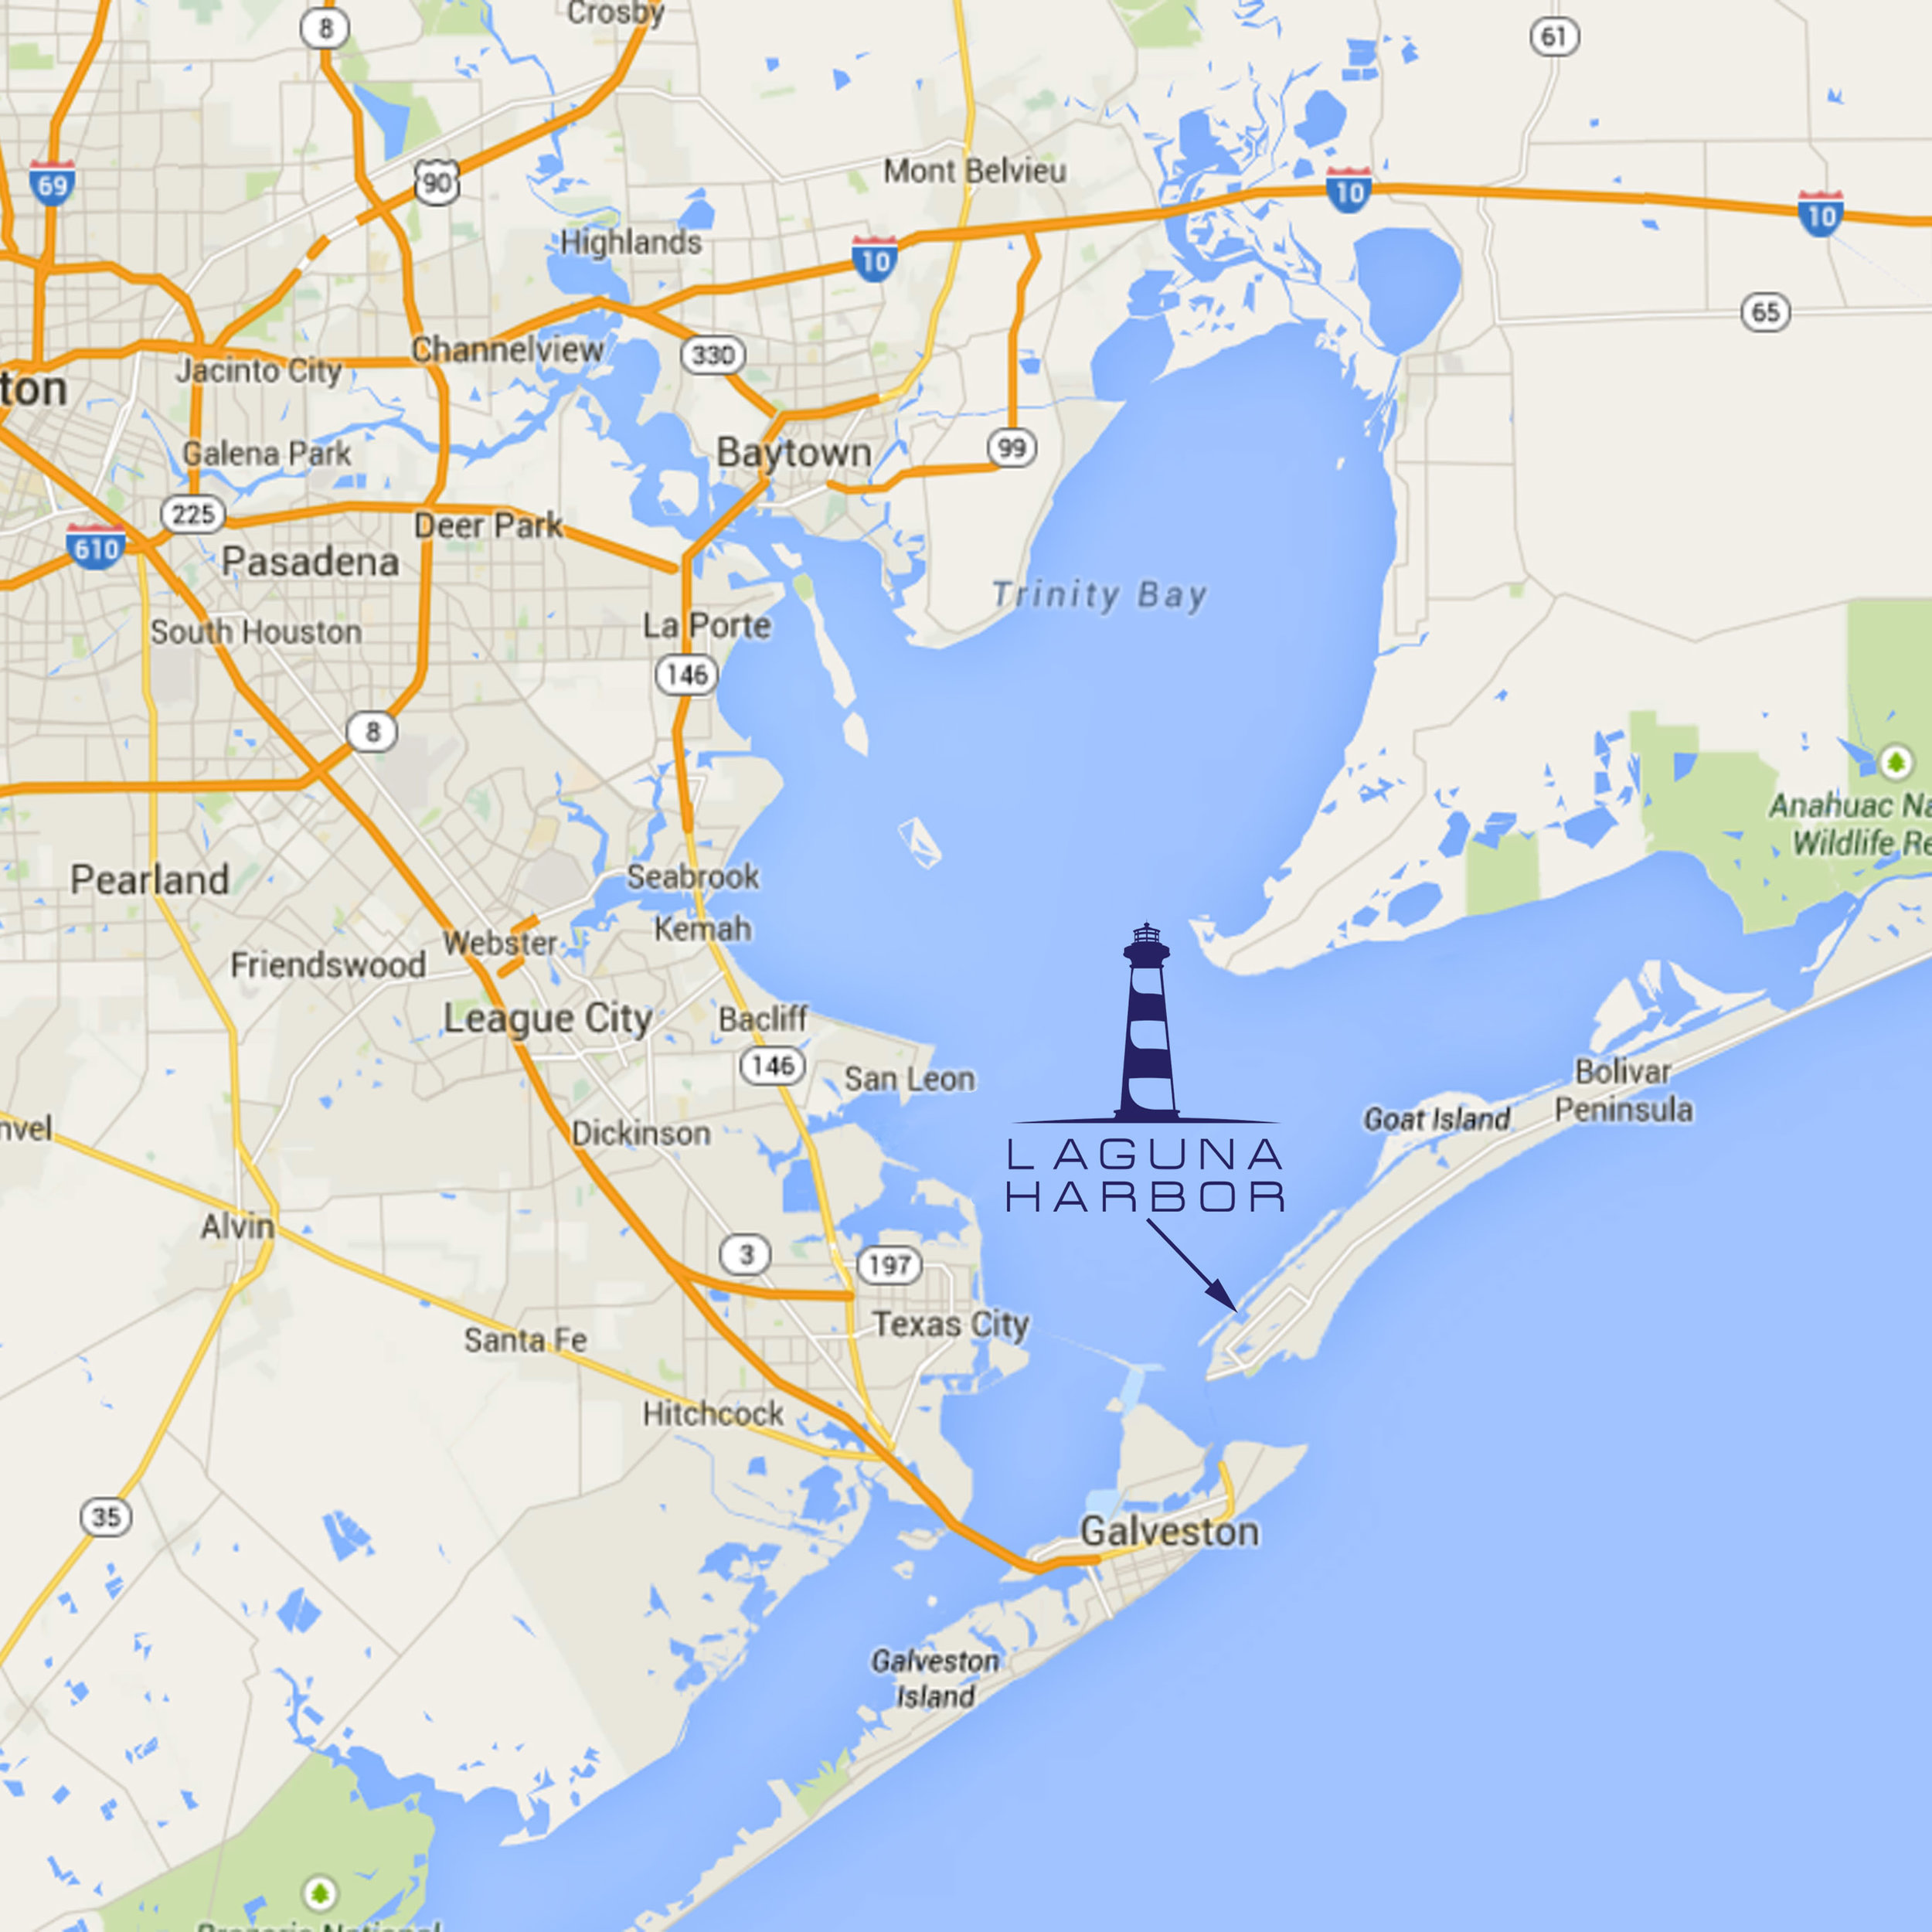 Laguna Harbor is located on Galveston Bay along the Intracoastal Waterway, on the western end of Bolivar Peninsula, Texas.